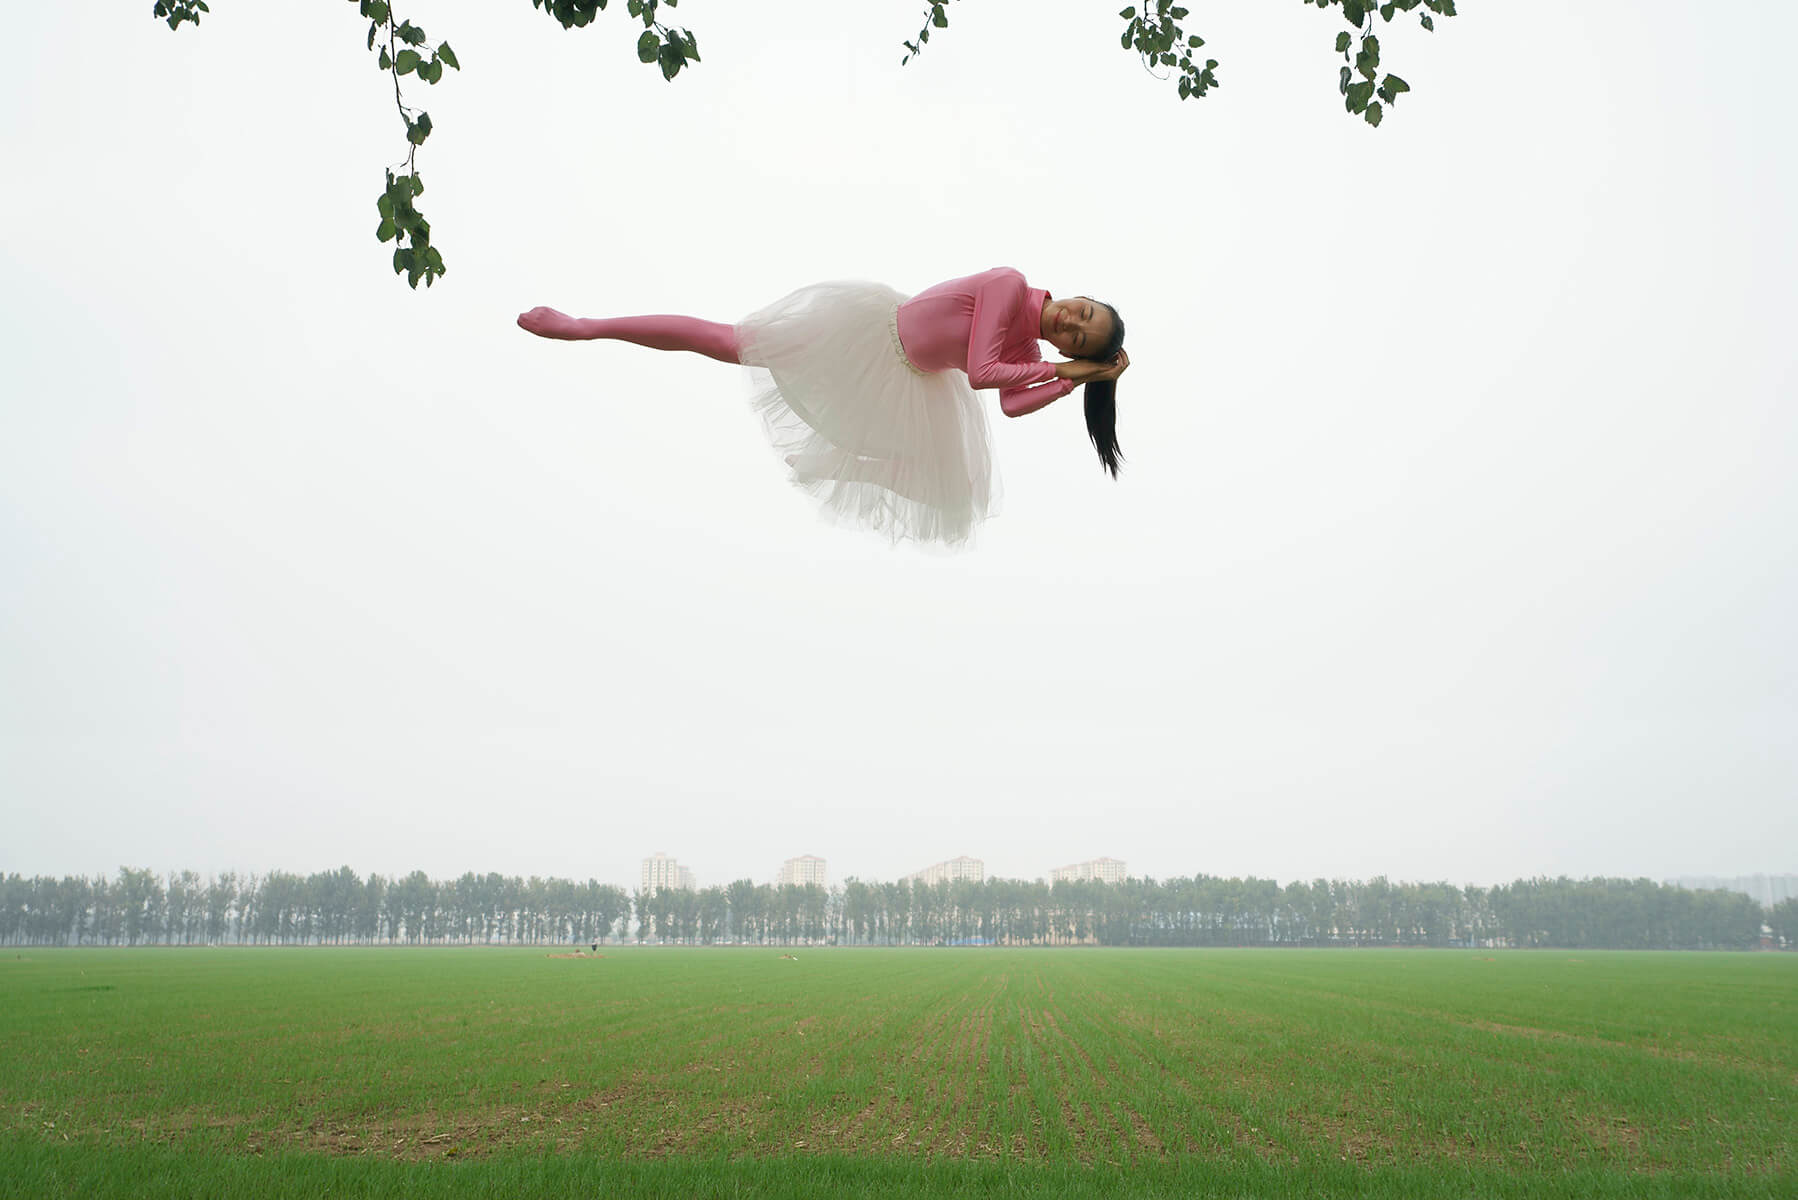 """Nana Flying"". Fotografía: Li Wei"